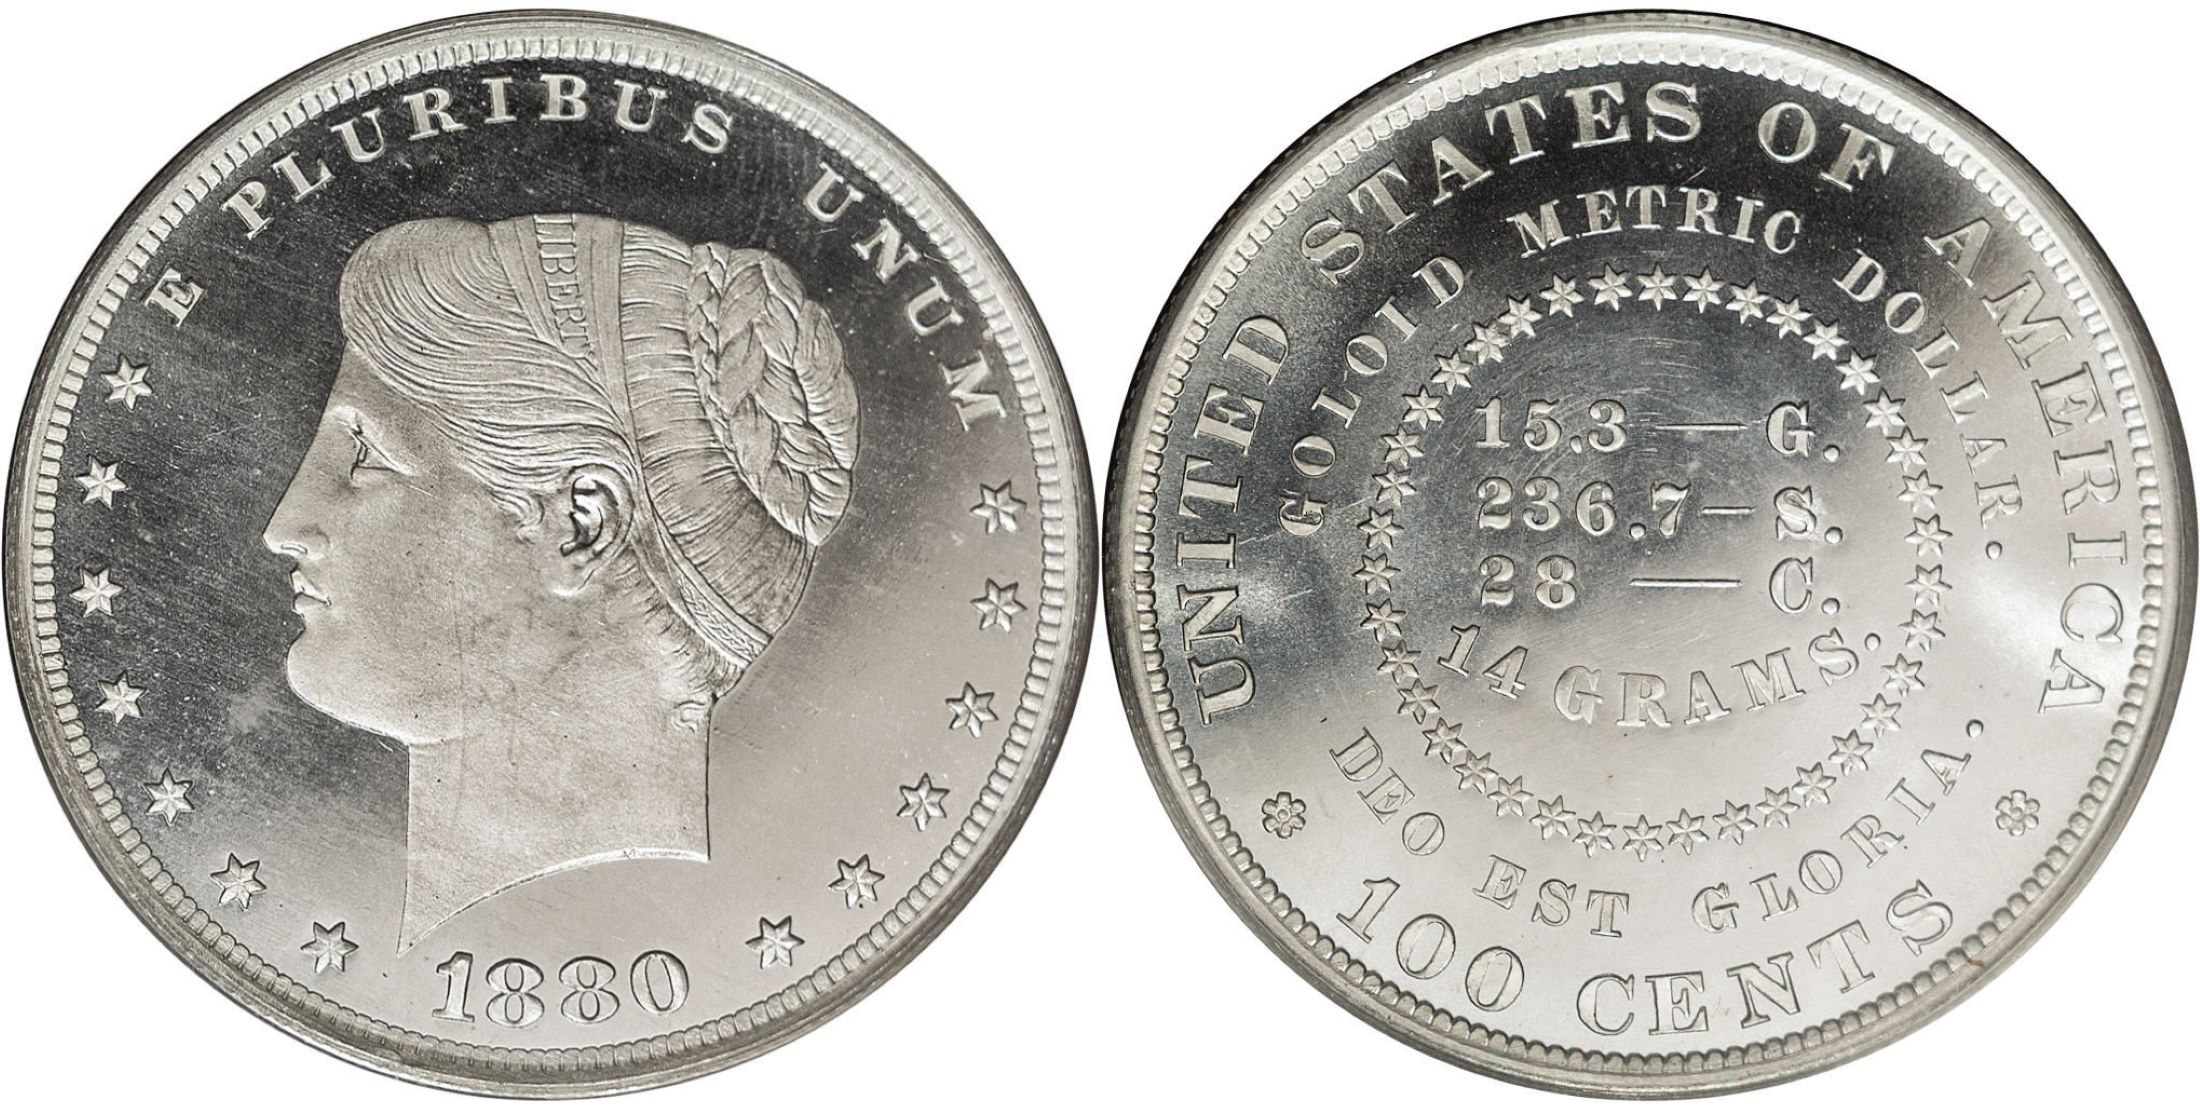 "PCGS PR67<BR>Image courtesy of <a href=""http://www.ha.com"" target=""_blank"">Heritage Numismatic Auctions</a>"